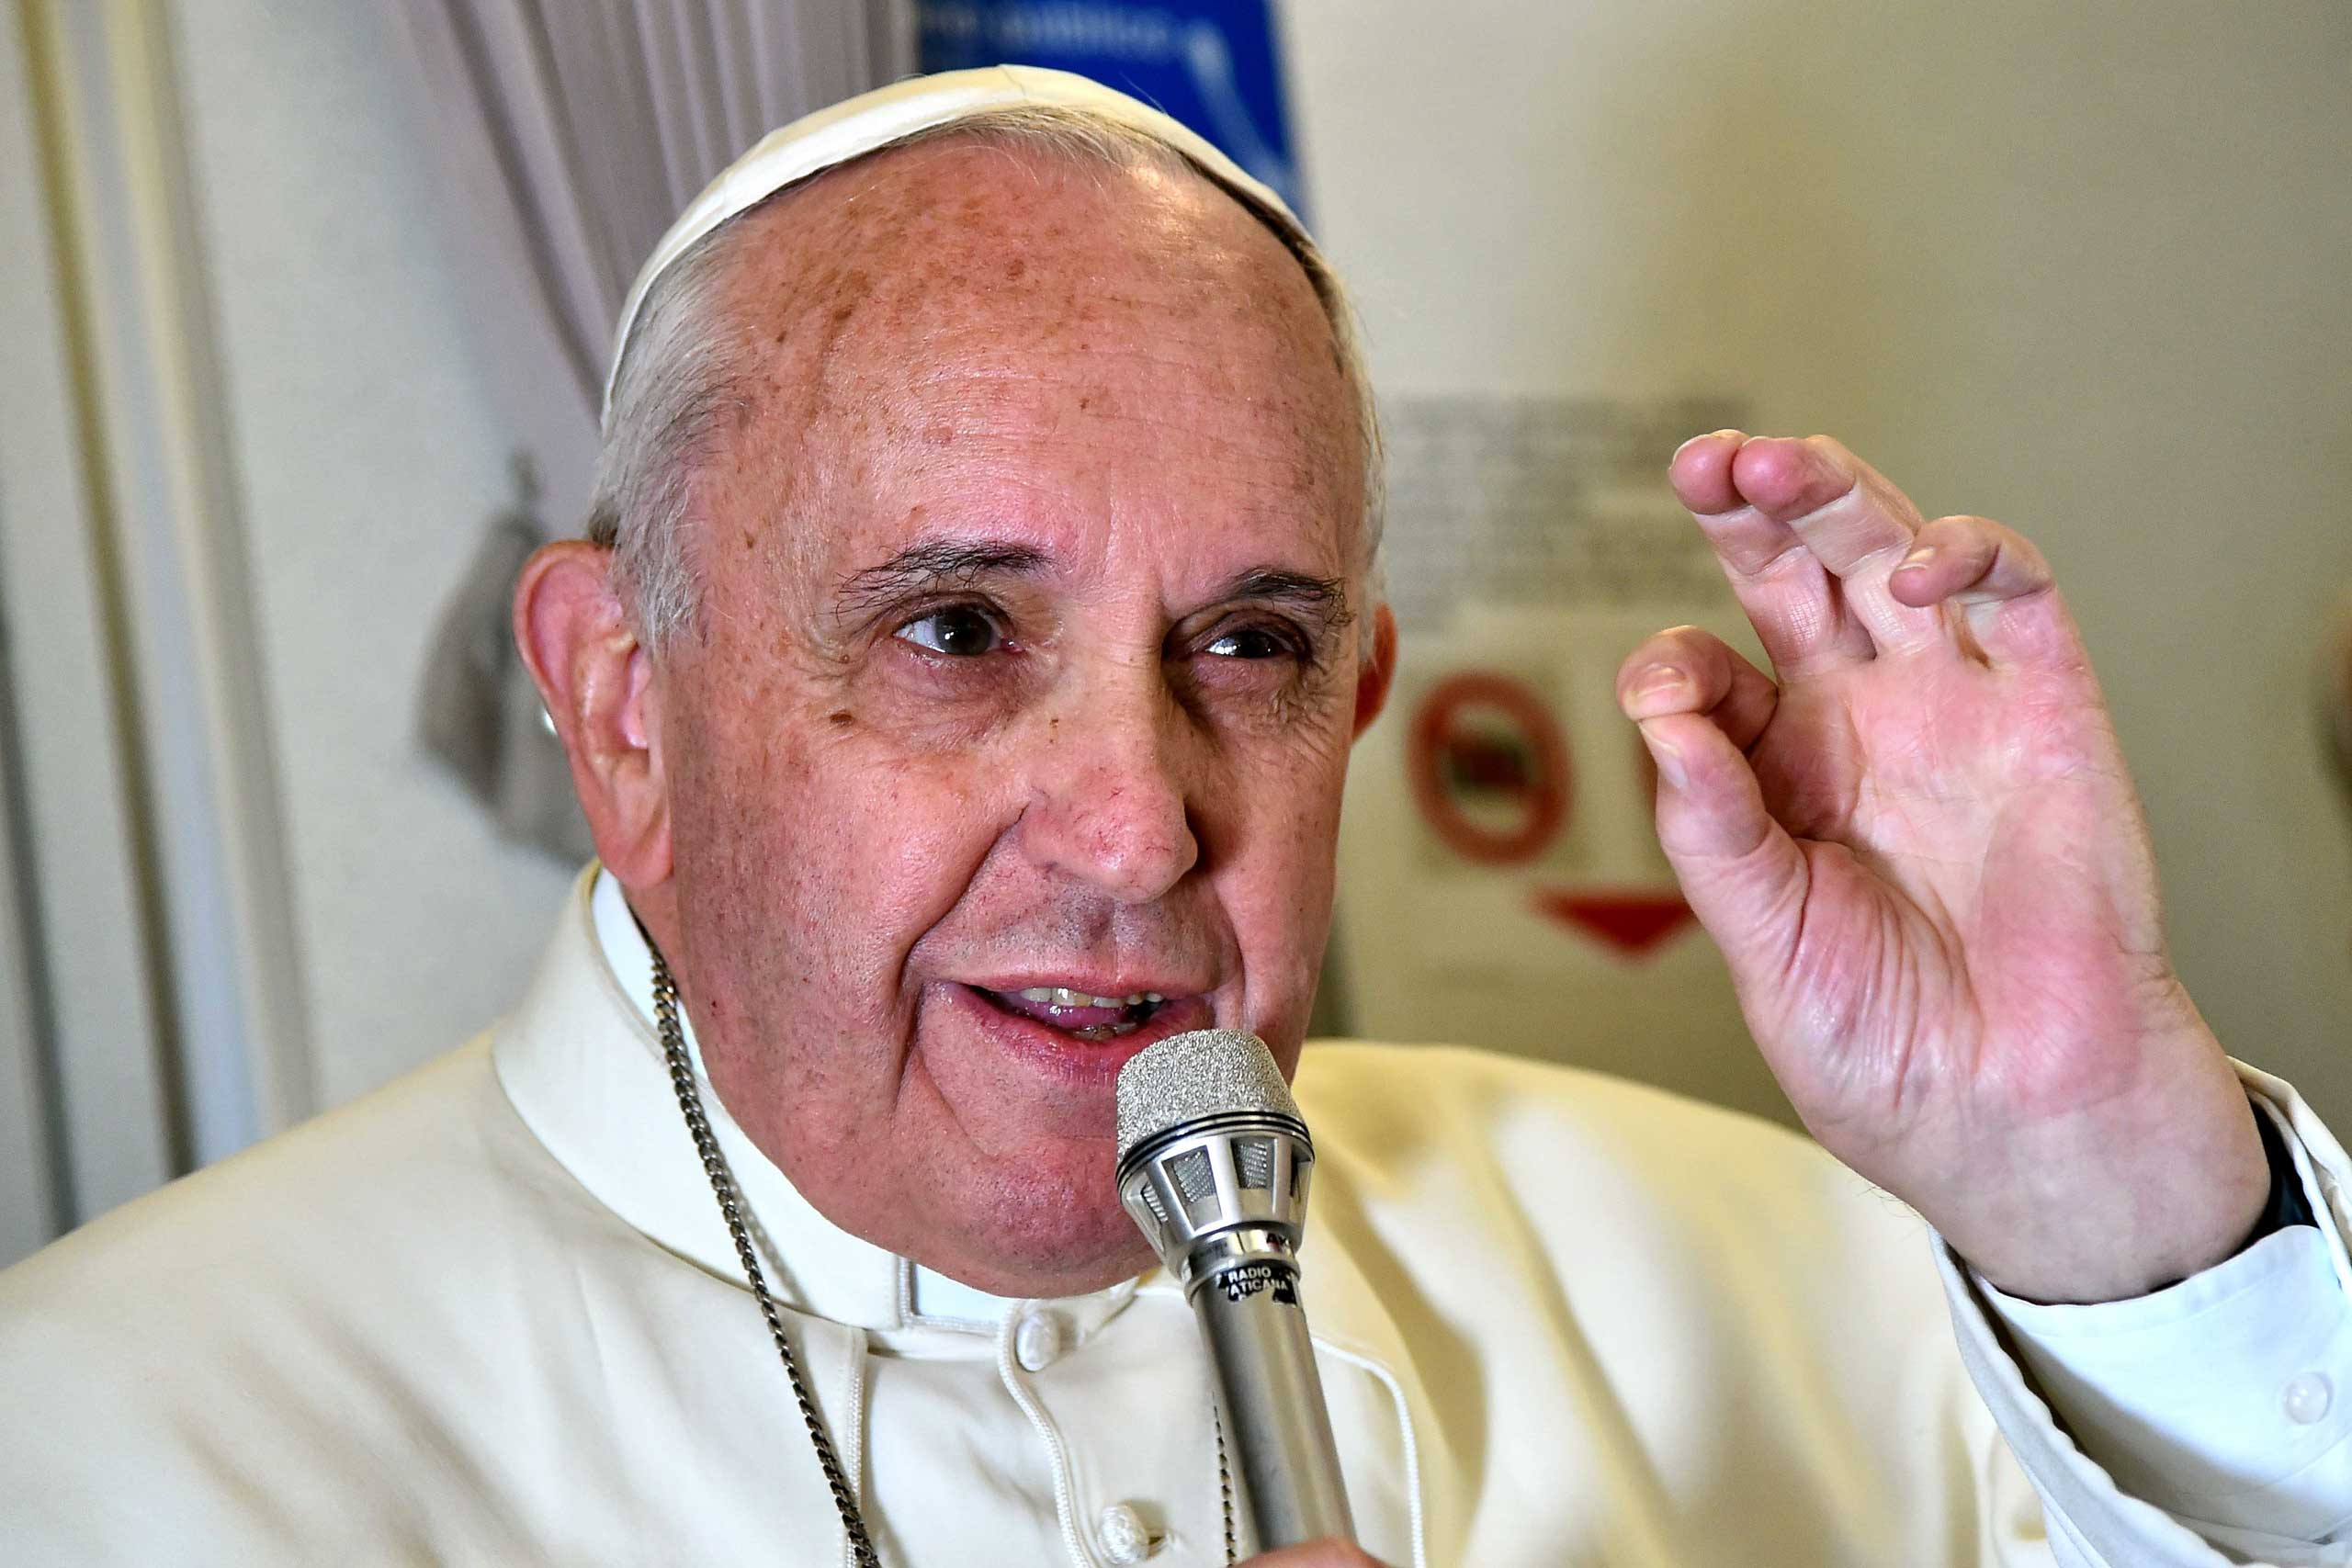 Pope Francis adresses journalists sitting onboard a plane during his trip back to Rome, on Jan. 19, 2015.